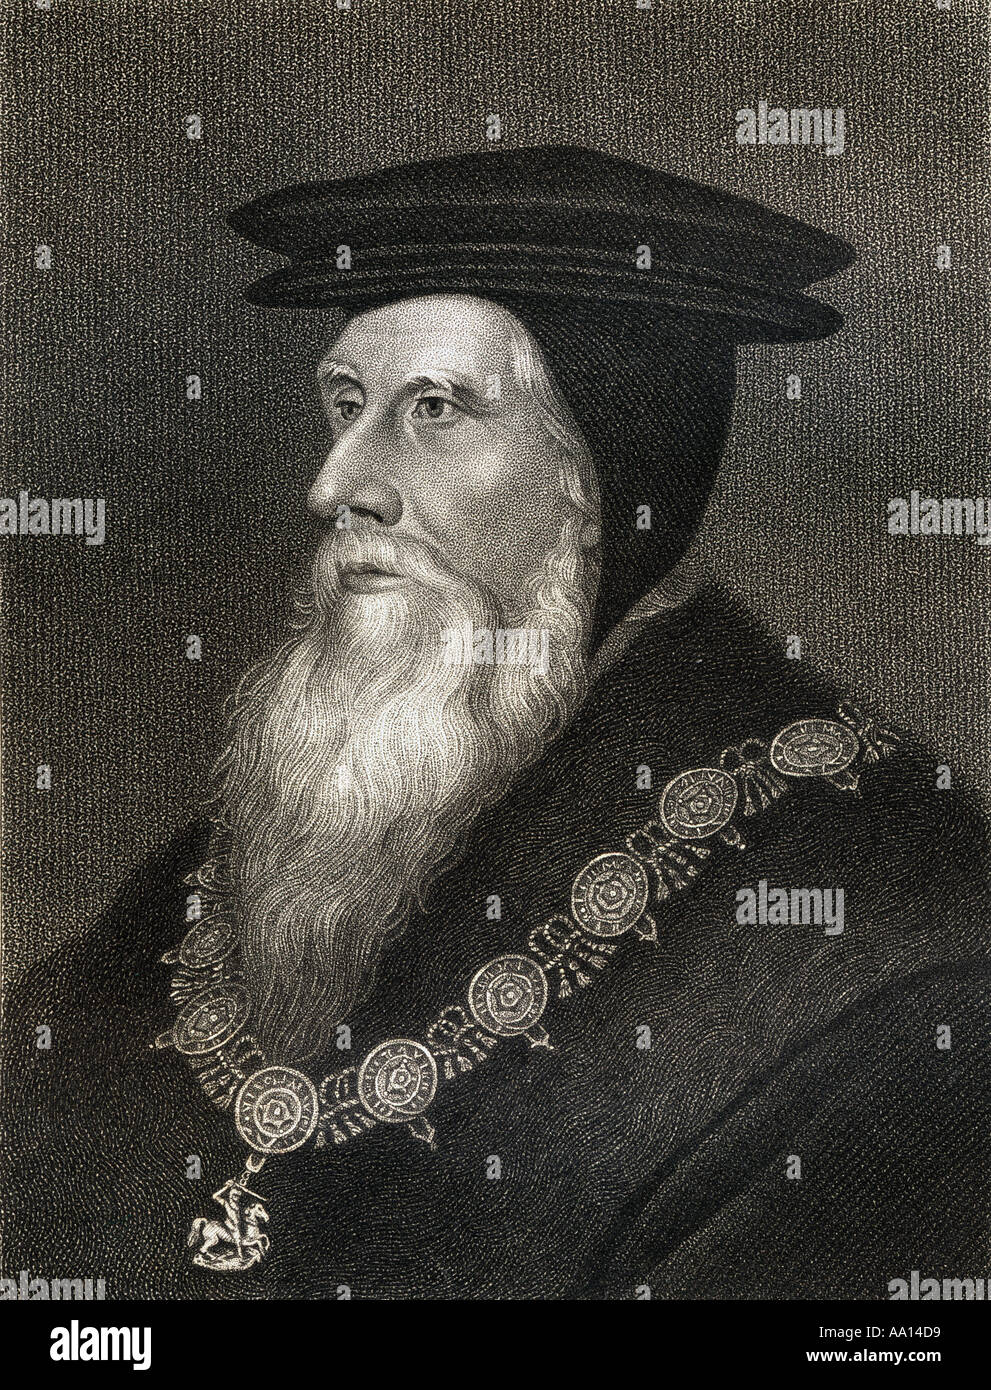 John Russell, 1st Earl of Bedford, 1485 - 1555. Founder of the wealth and greatness of the house of Russell. - Stock Image